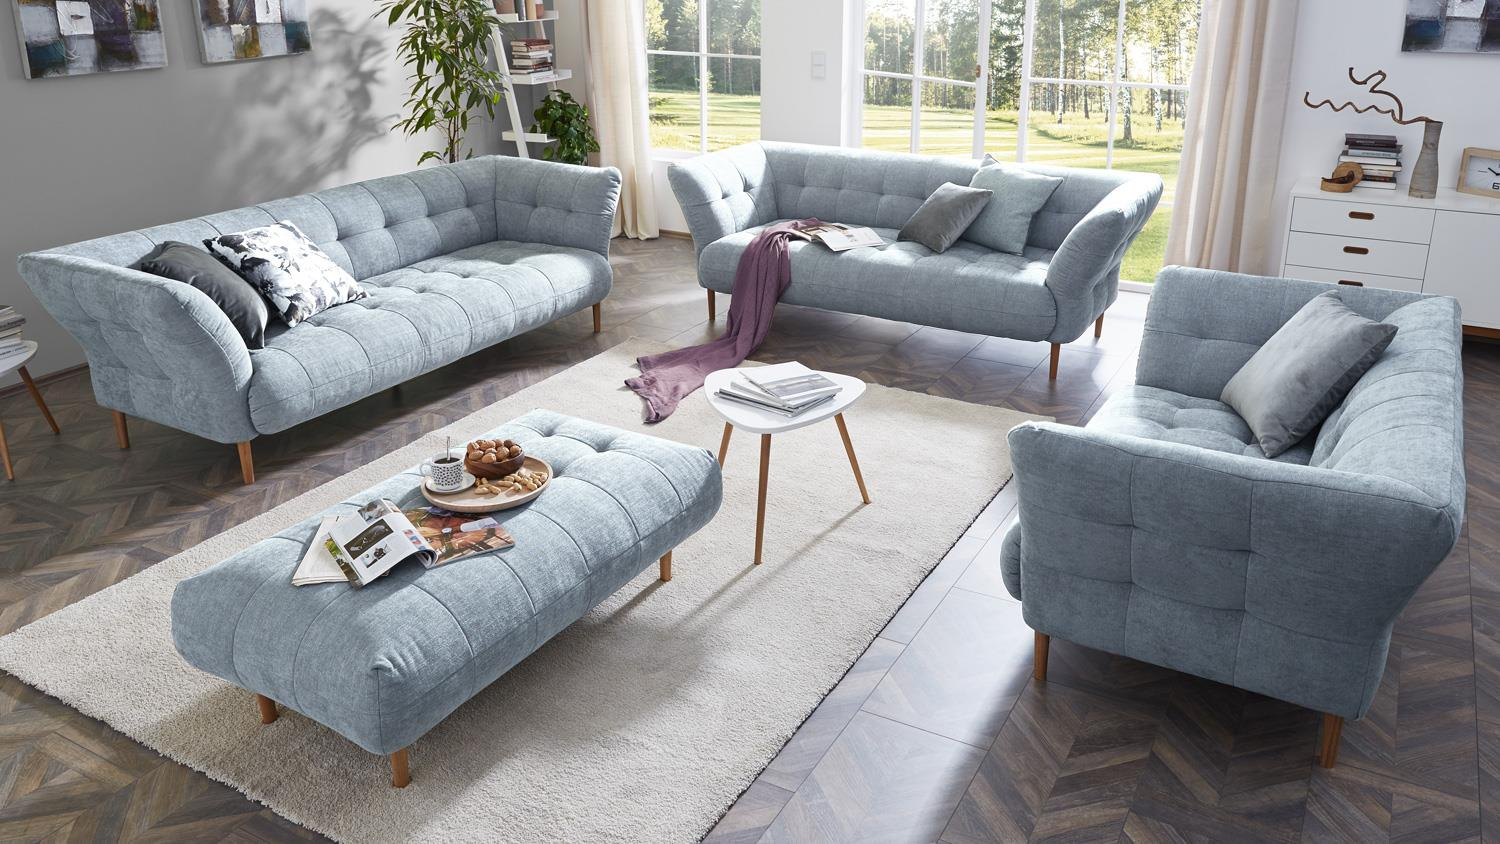 sofa big apple 2 5 sitzer stoff light blue gestell buche natur 220 cm. Black Bedroom Furniture Sets. Home Design Ideas